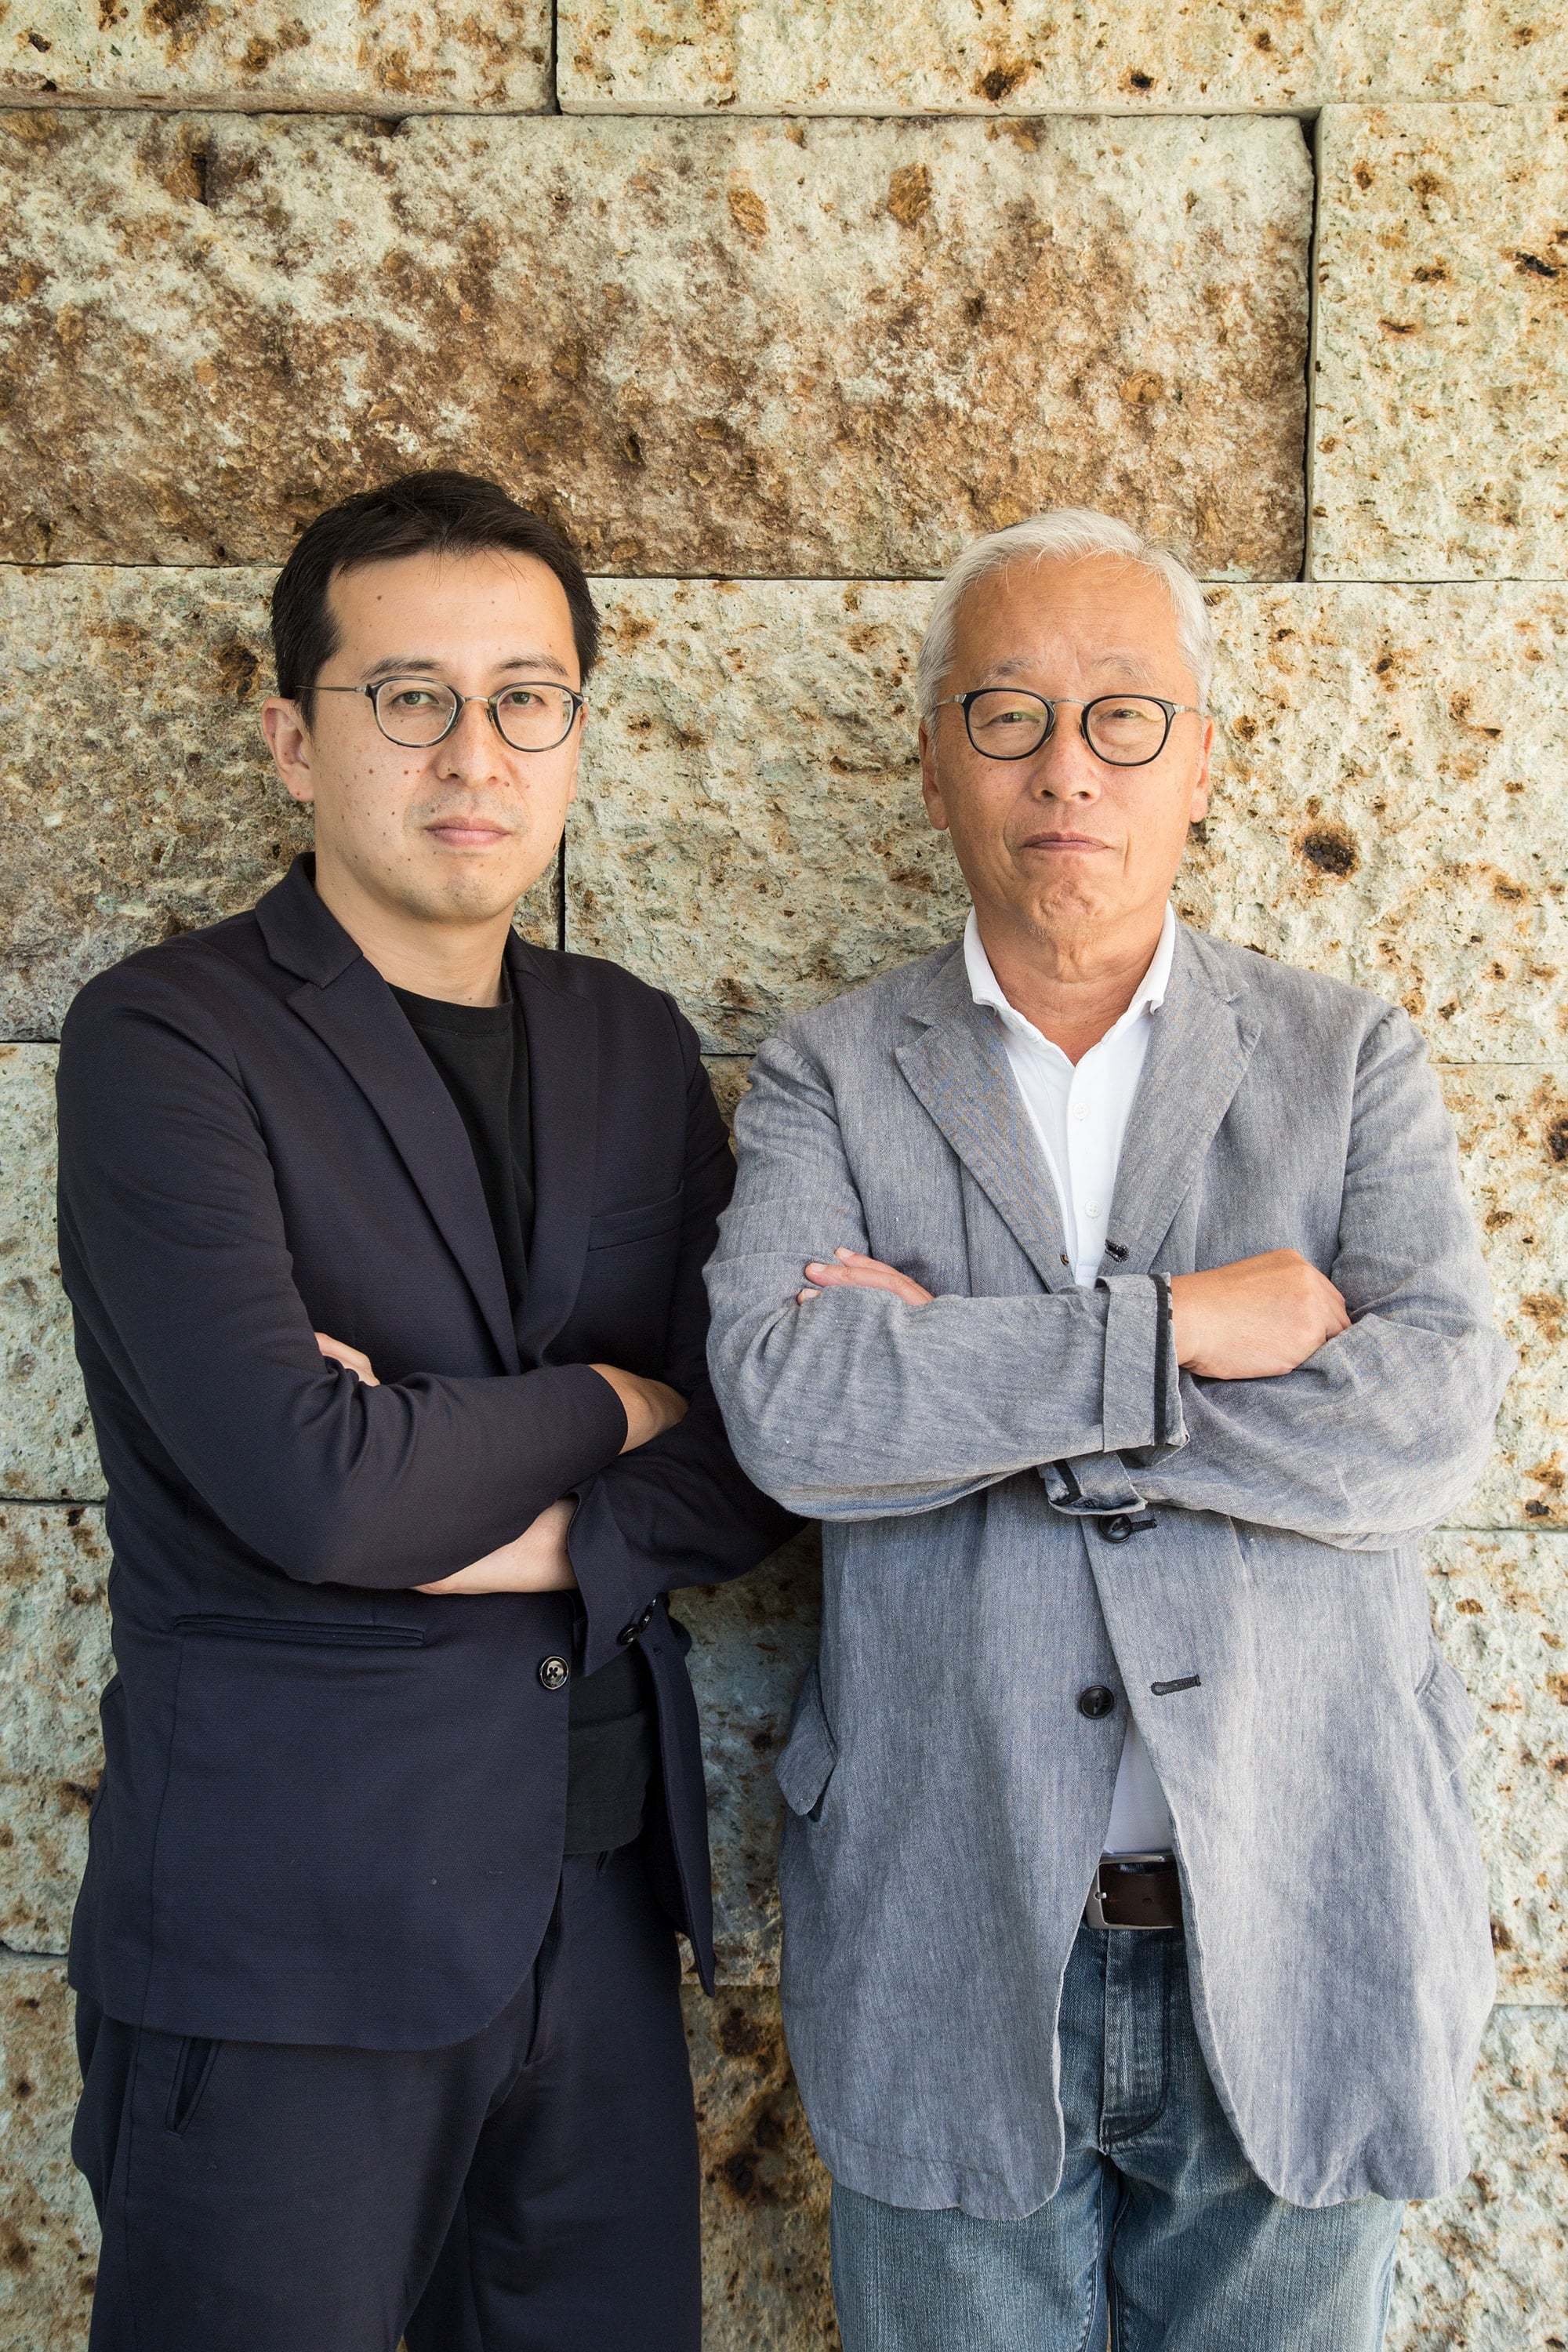 Hiroshi Sugimoto (Right) and Tomoyuki Sakakida (Left). The wall stone behind the two is the Oya Stone from Enoura Observatory.